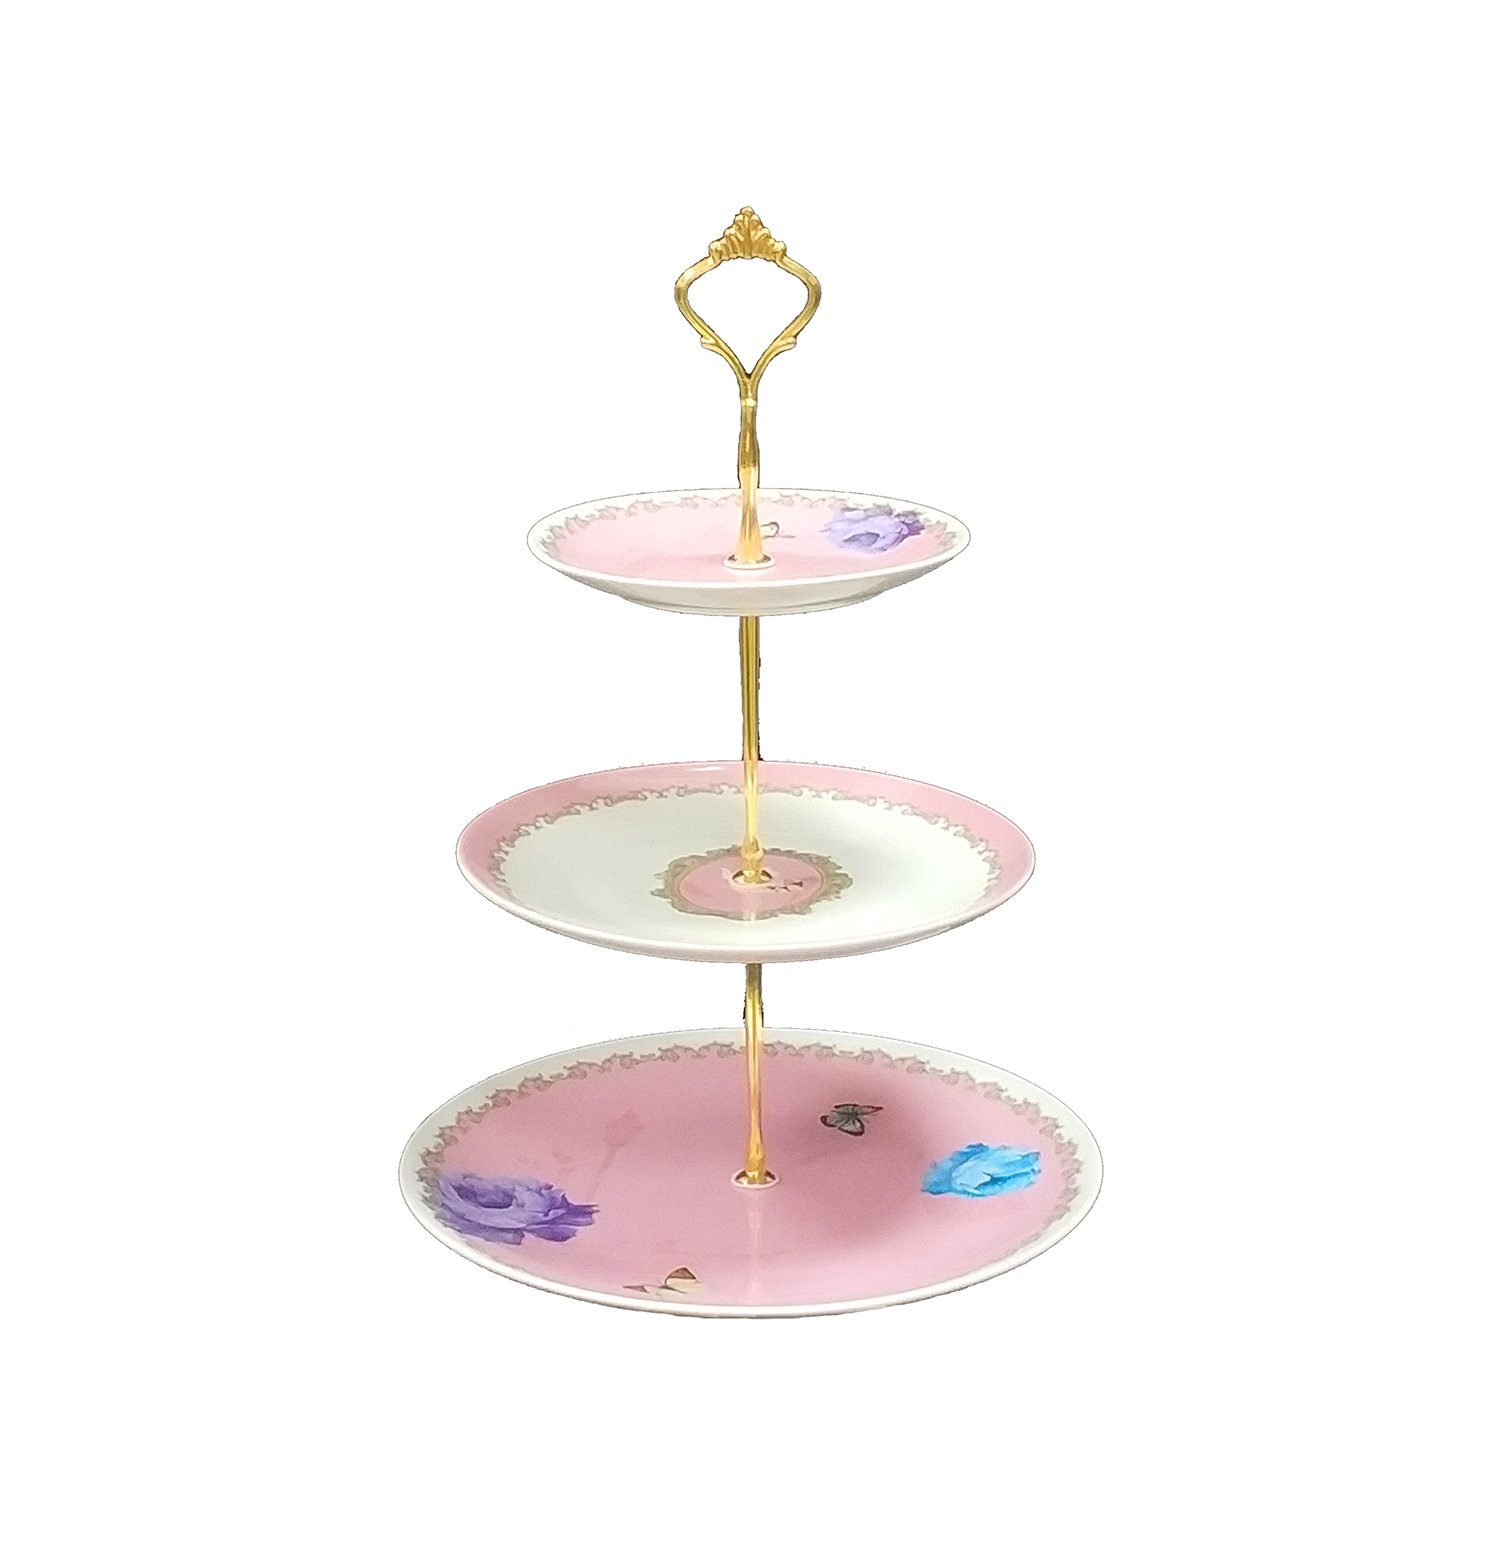 KingDao 3 tier Ceramic Cake Plate Stand Porcelain Plates Vintage Rose Pastel Pink Royal Vintage Dessert Cupcake Display Dessert Fruite Tray Stand Food Display Tea Party Pastry Serving Platter (Pink)